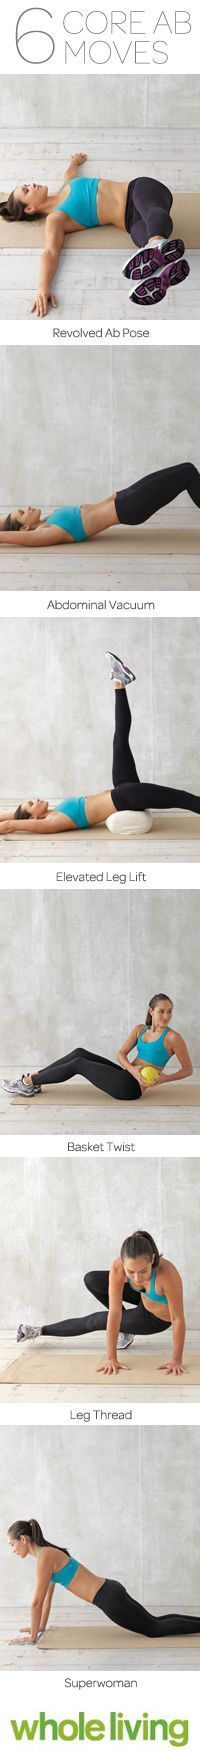 Crunches are not enough! Try these 6 moves to keep you looking & feeling beautifully balanced via Wholeliving.com